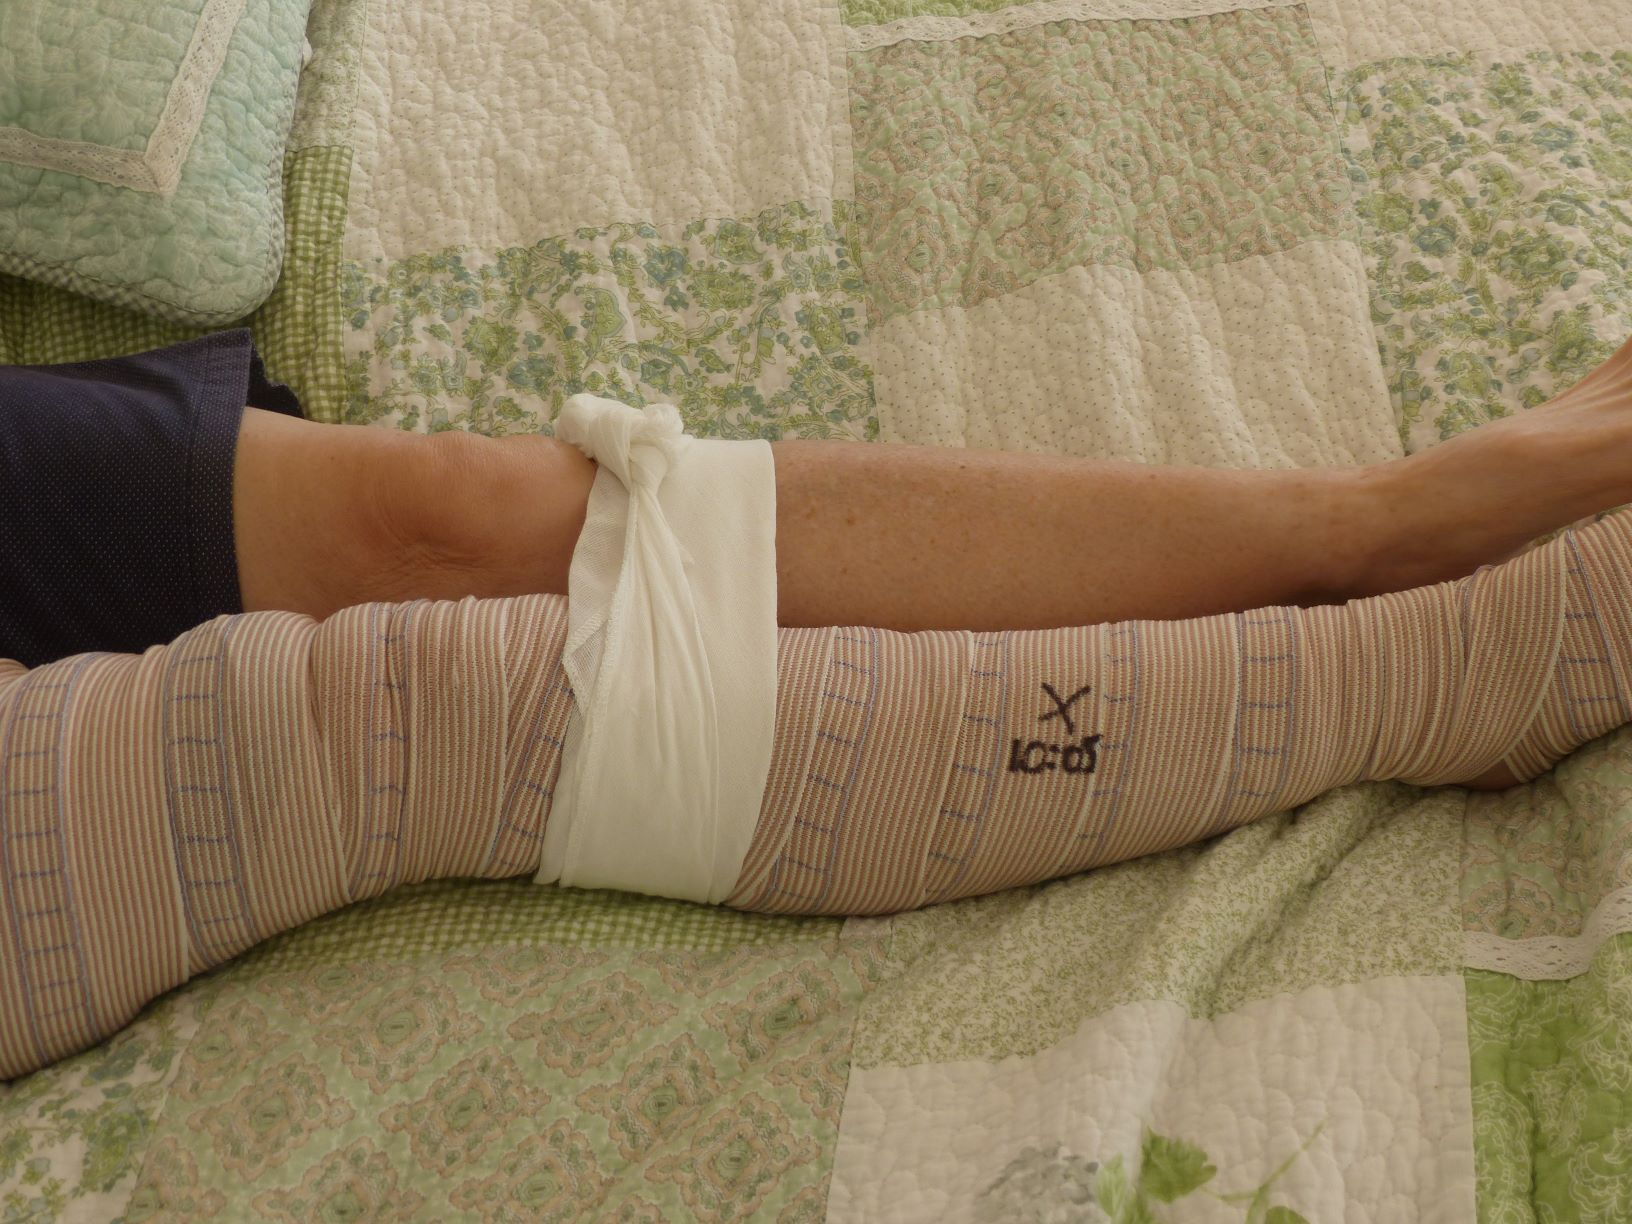 - Apply a wide bandage firmly over the bite site.Starting at the fingers or toes, apply a second pressure bandage around the limb, working upwards as high as possible (over clothing is fine). The bandage should be tight enough to barely allow a fingertip to slightly raise the edge, but not so tight as to affect circulation. The bandage may remain on for hours.Mark the bandage with a pen over the bite site to assist hospital staff.To help immobilise the limb, apply a splint that will keep the limb stationary.